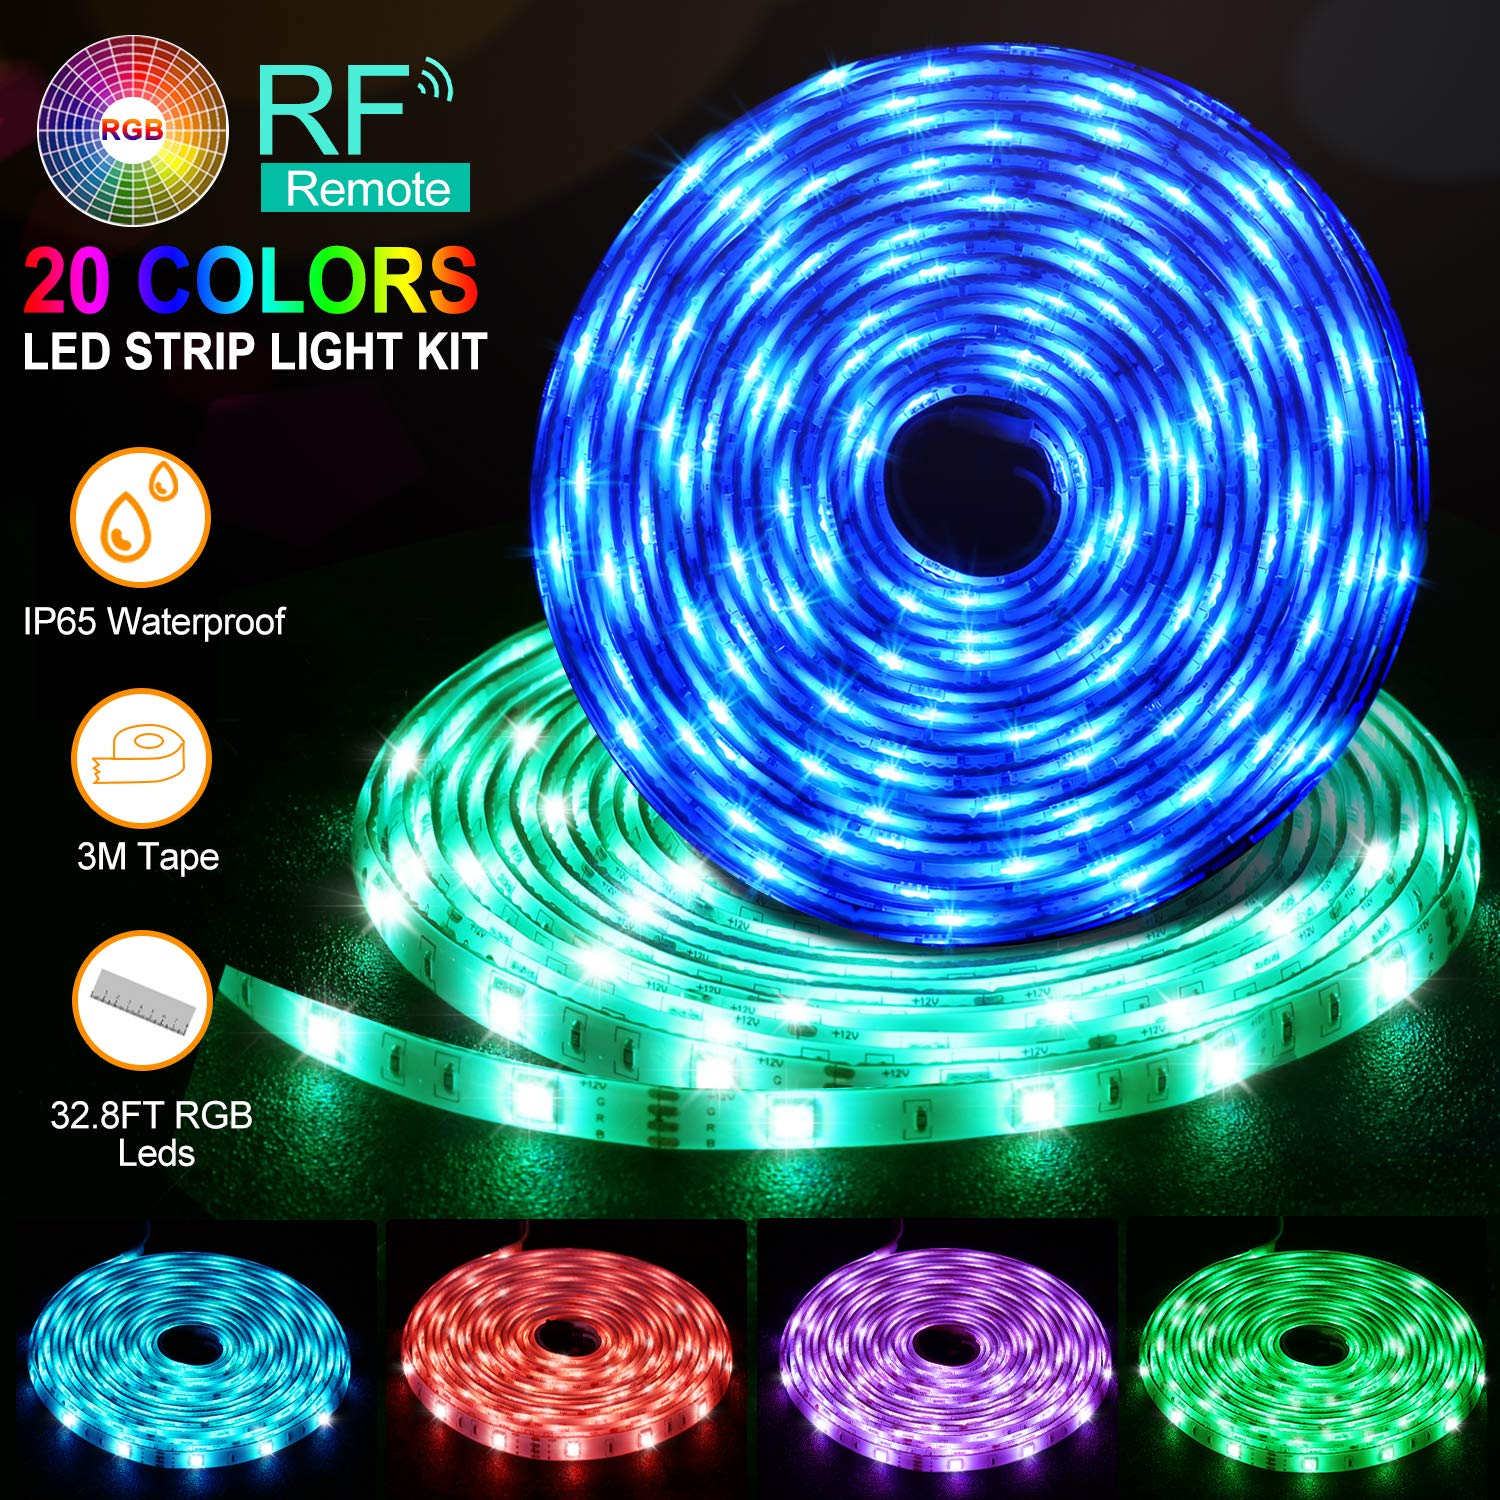 LED Strip Lights, Flykul LED Light Strip 32.8Ft/10M Waterproof RGB SMD 5050 300LEDs Rope Lighting Color Changing Full Kit with 44 Keys RF Remote Controller and DC 12V 5A Power Adapter by Flykul (Image #1)